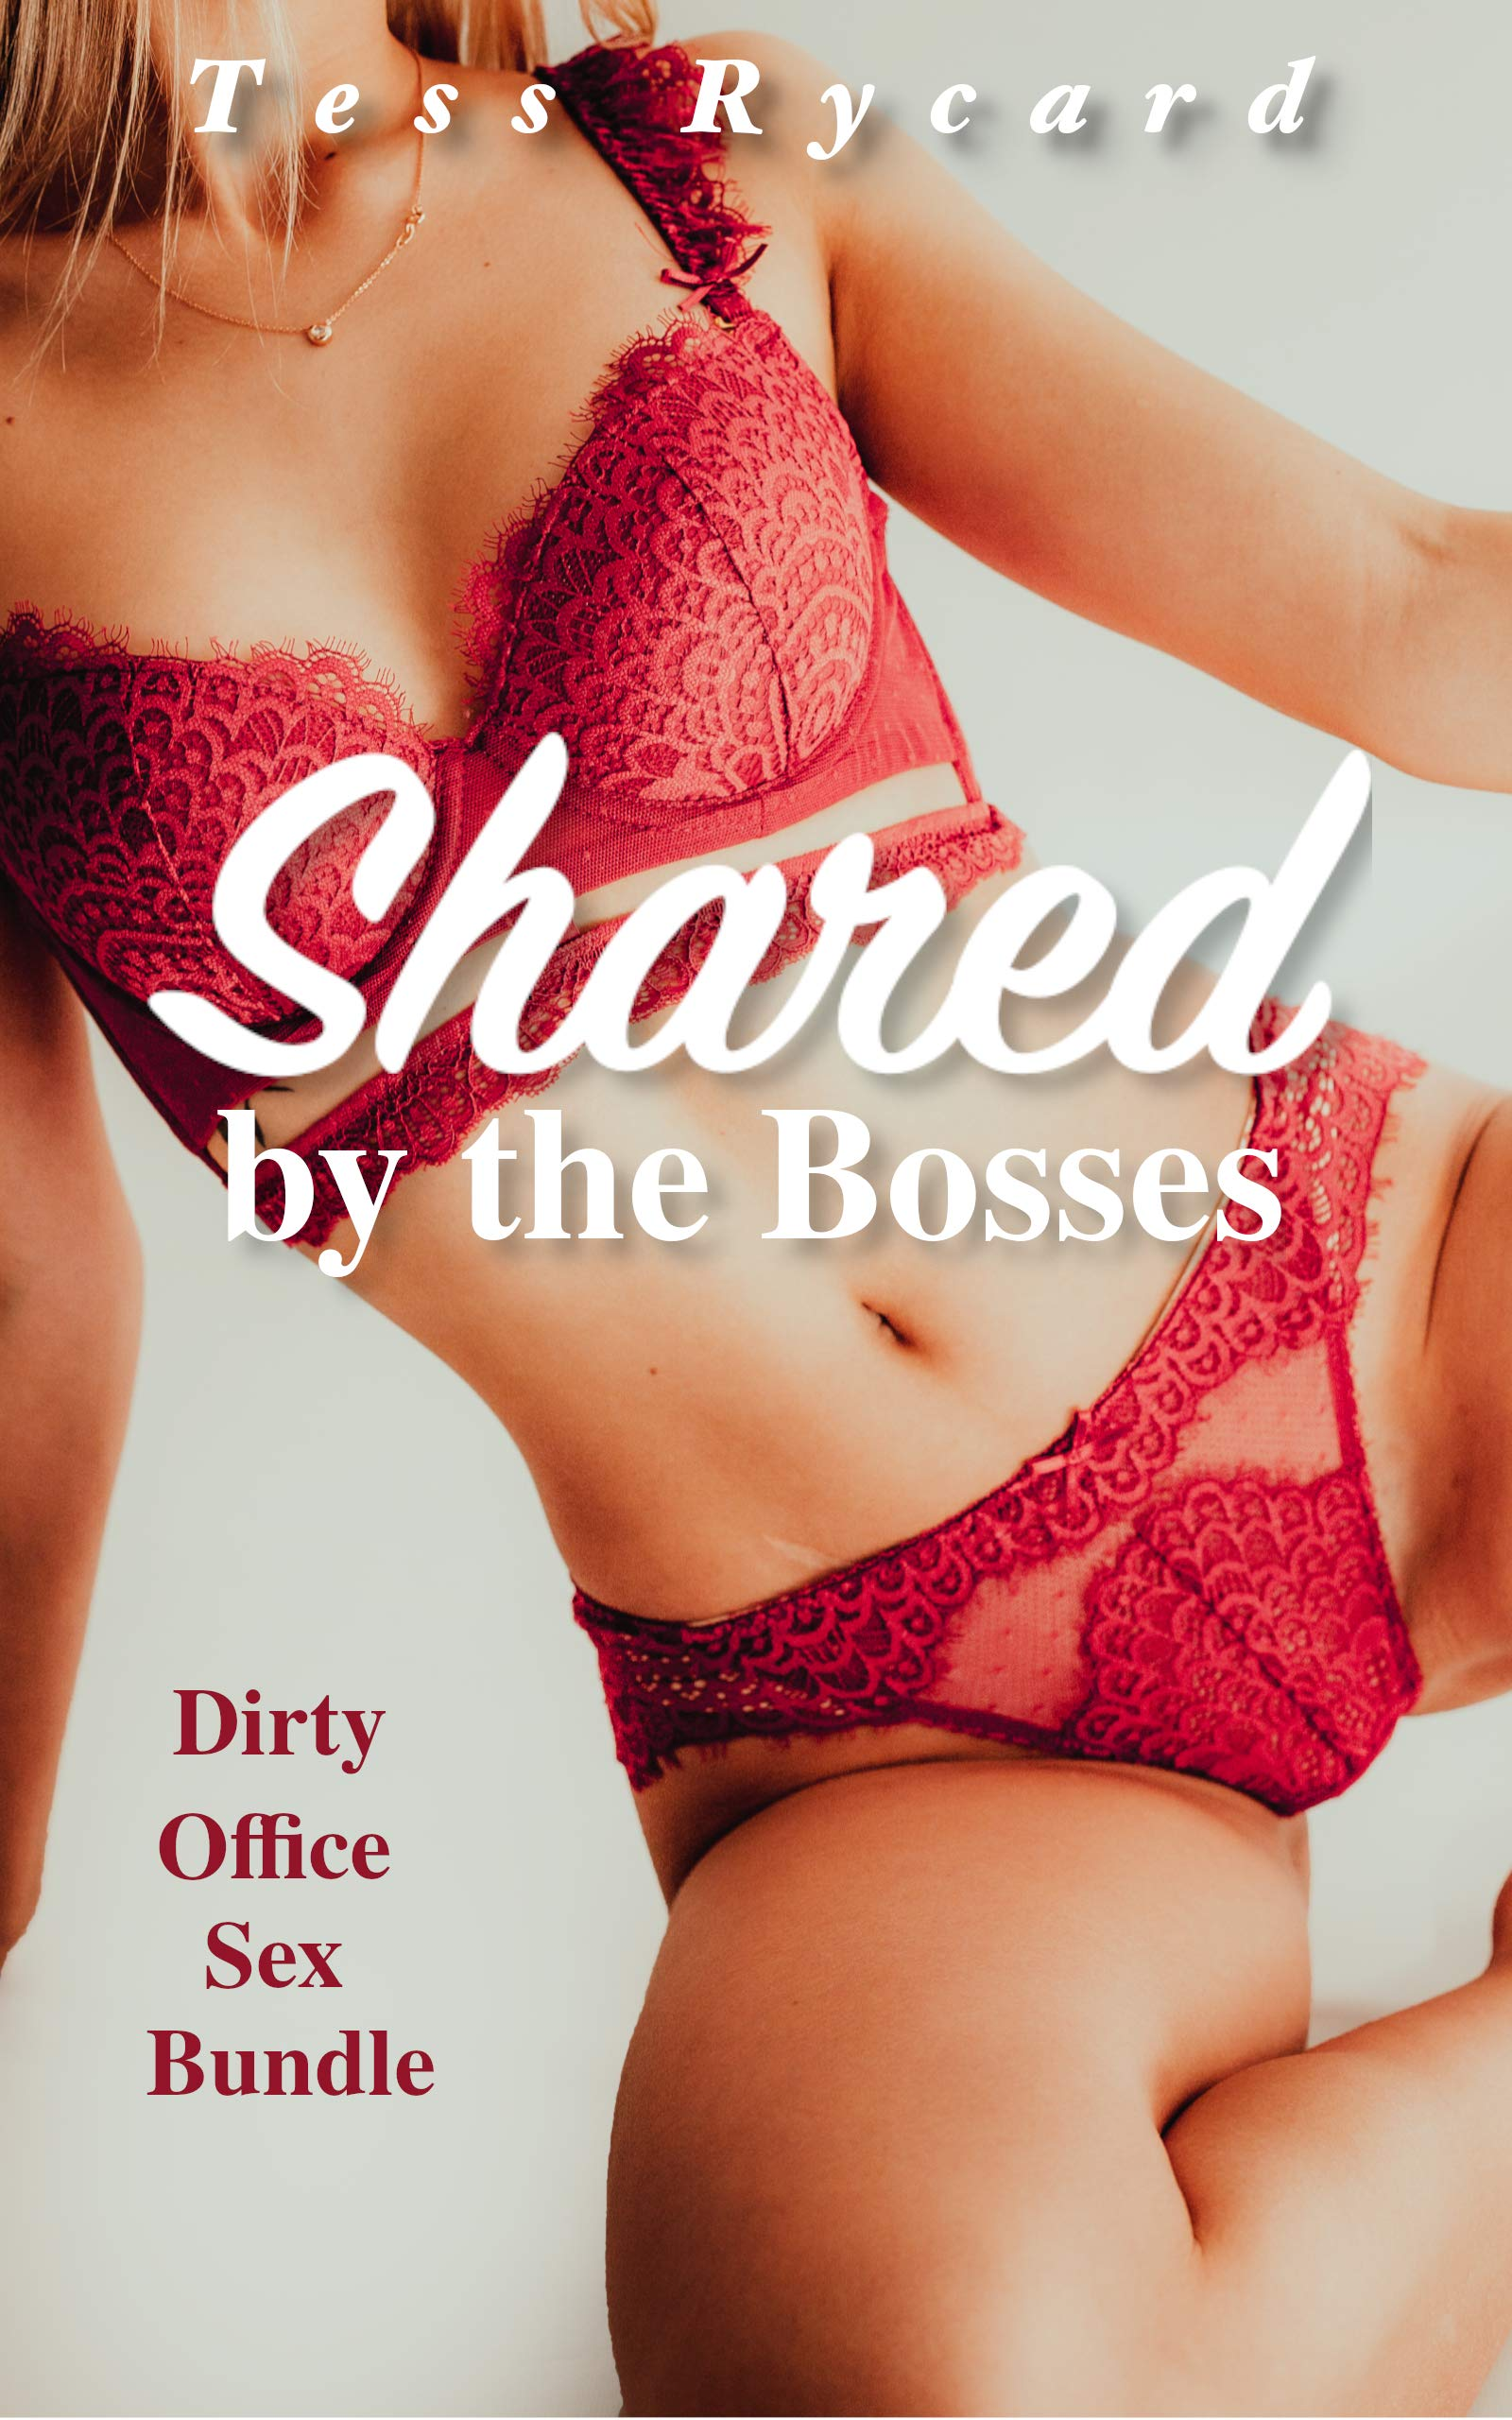 Shared by the Bosses: Dirty Office Sex Bundle